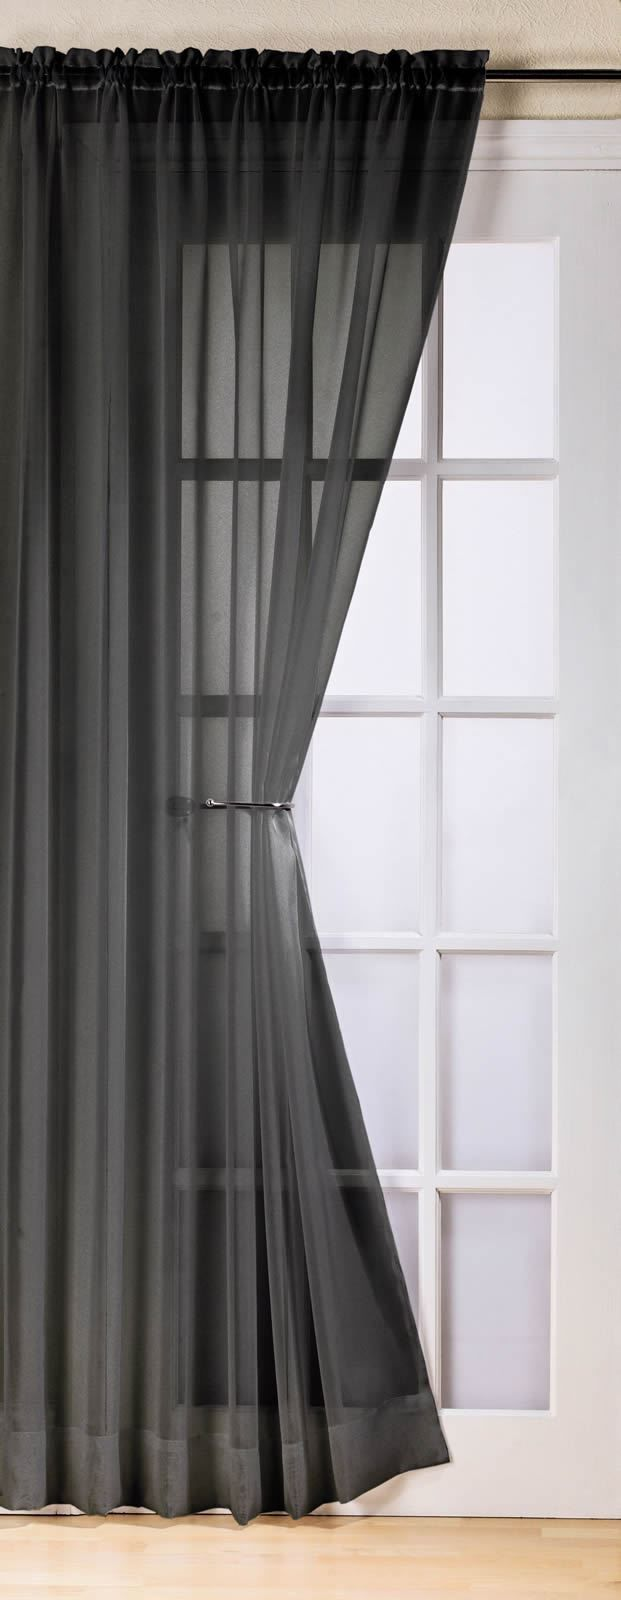 Black Voile Curtains Plain Black Colour Slot Top Ready Made Stylish Light Net Voile Curtain